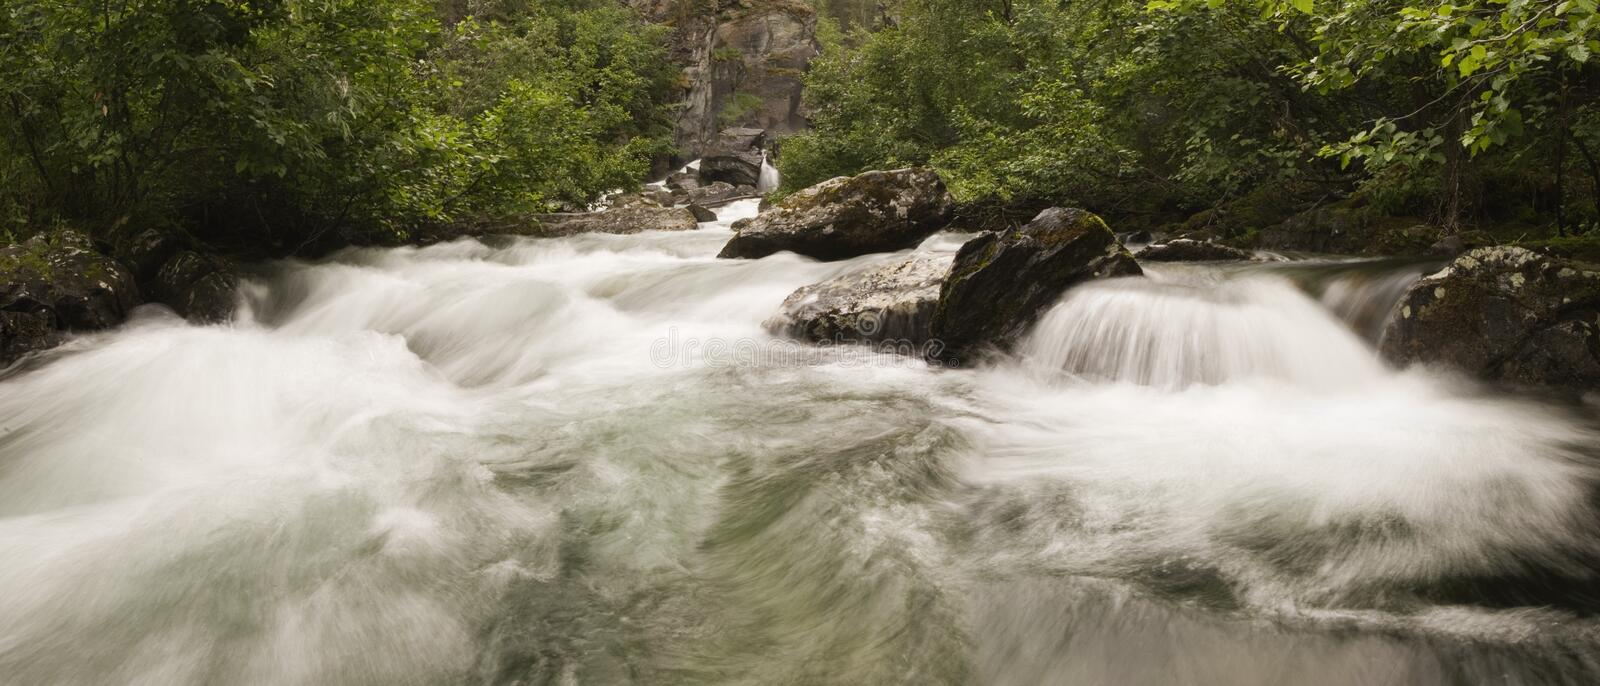 Liberty Falls cascade water royalty free stock images